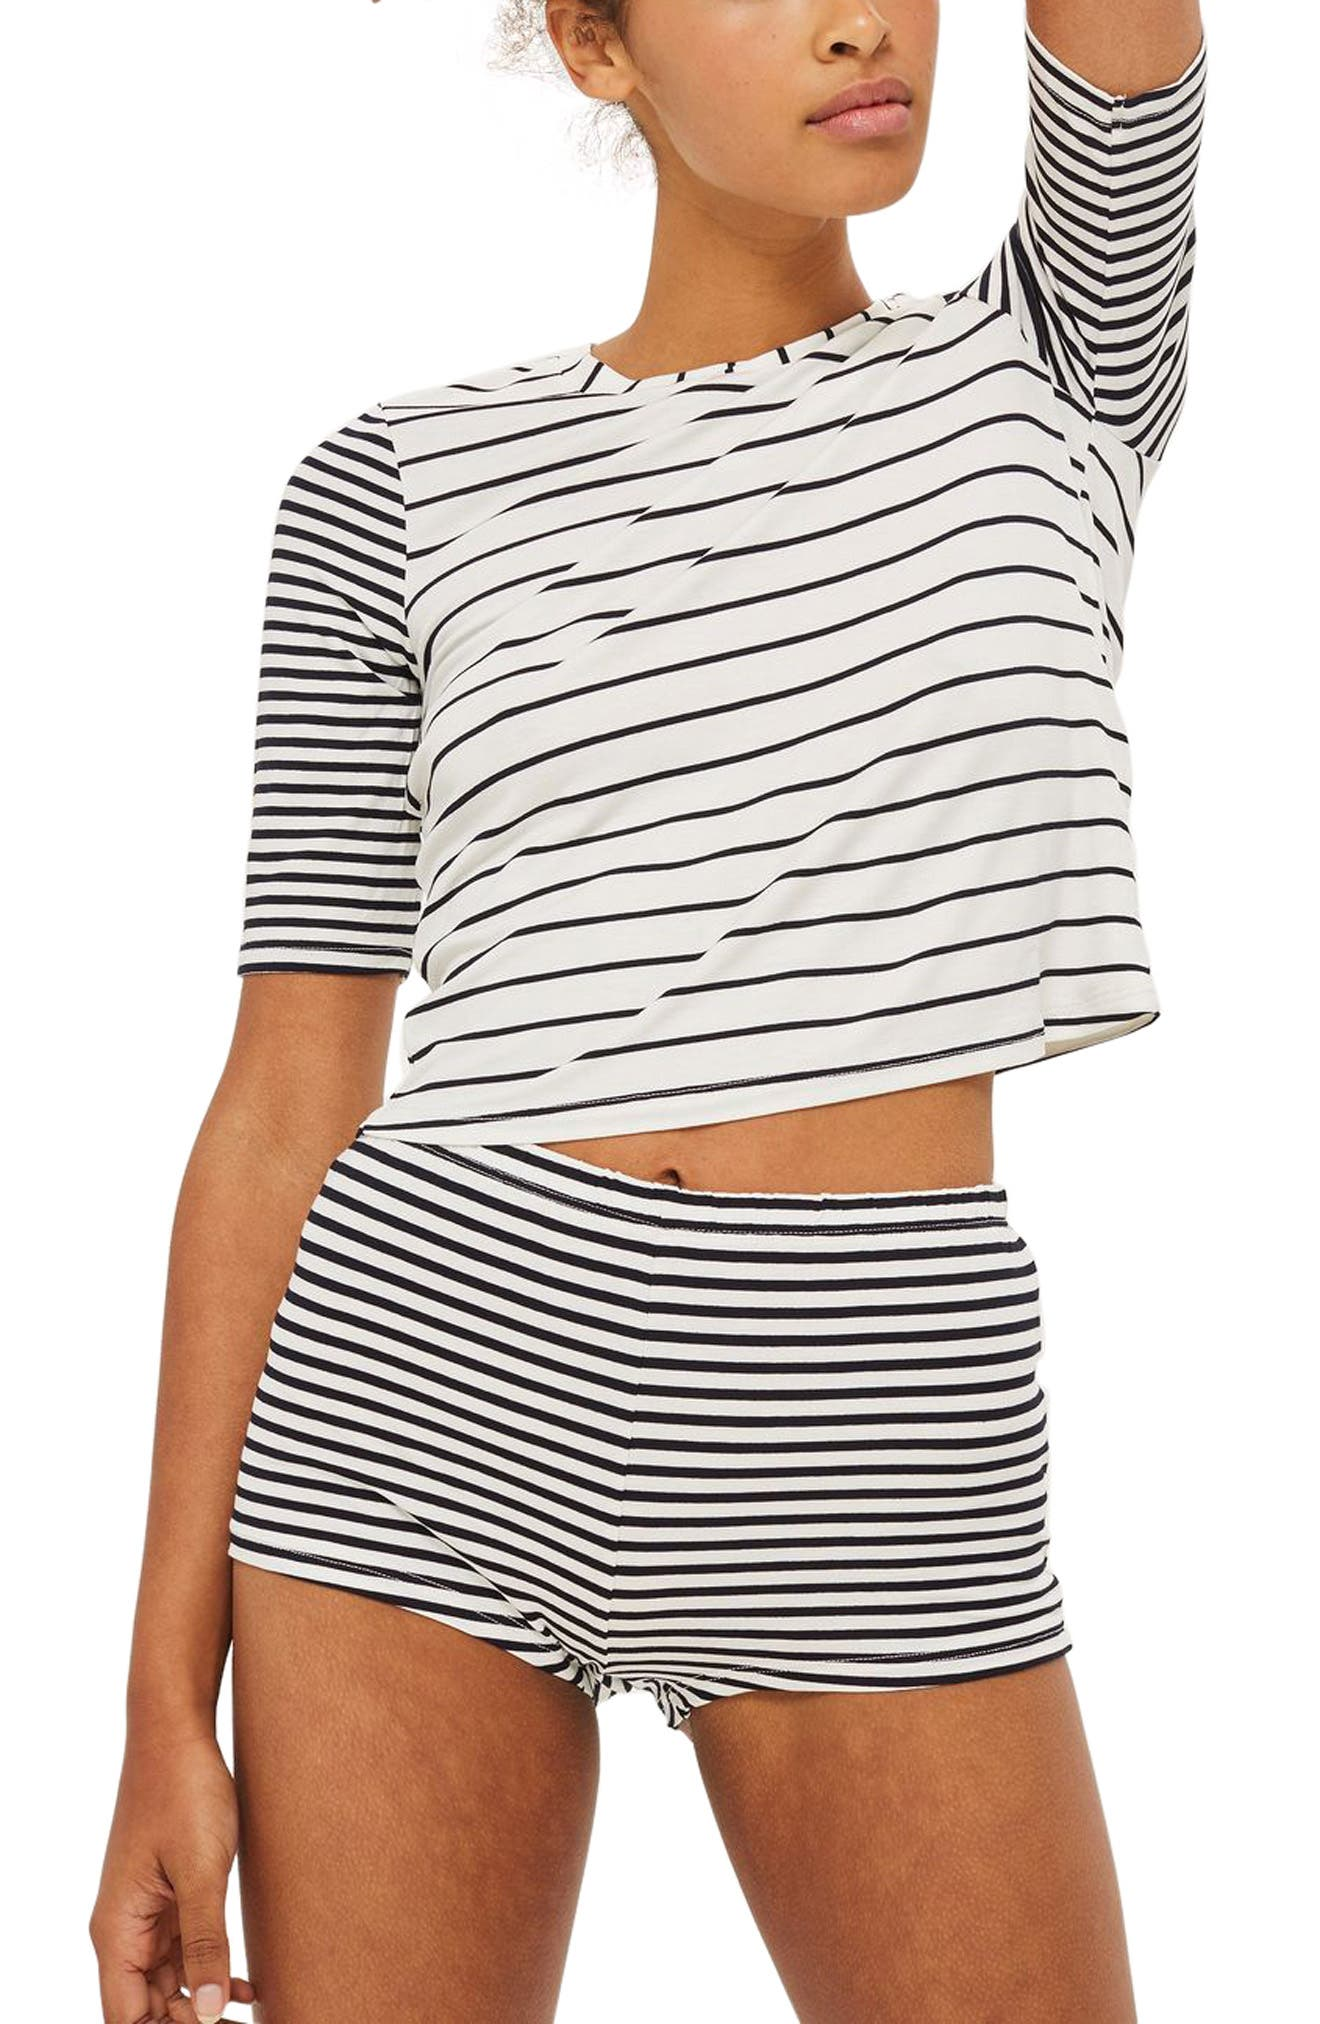 Topshop Harriet Contrast Stripe Pajamas